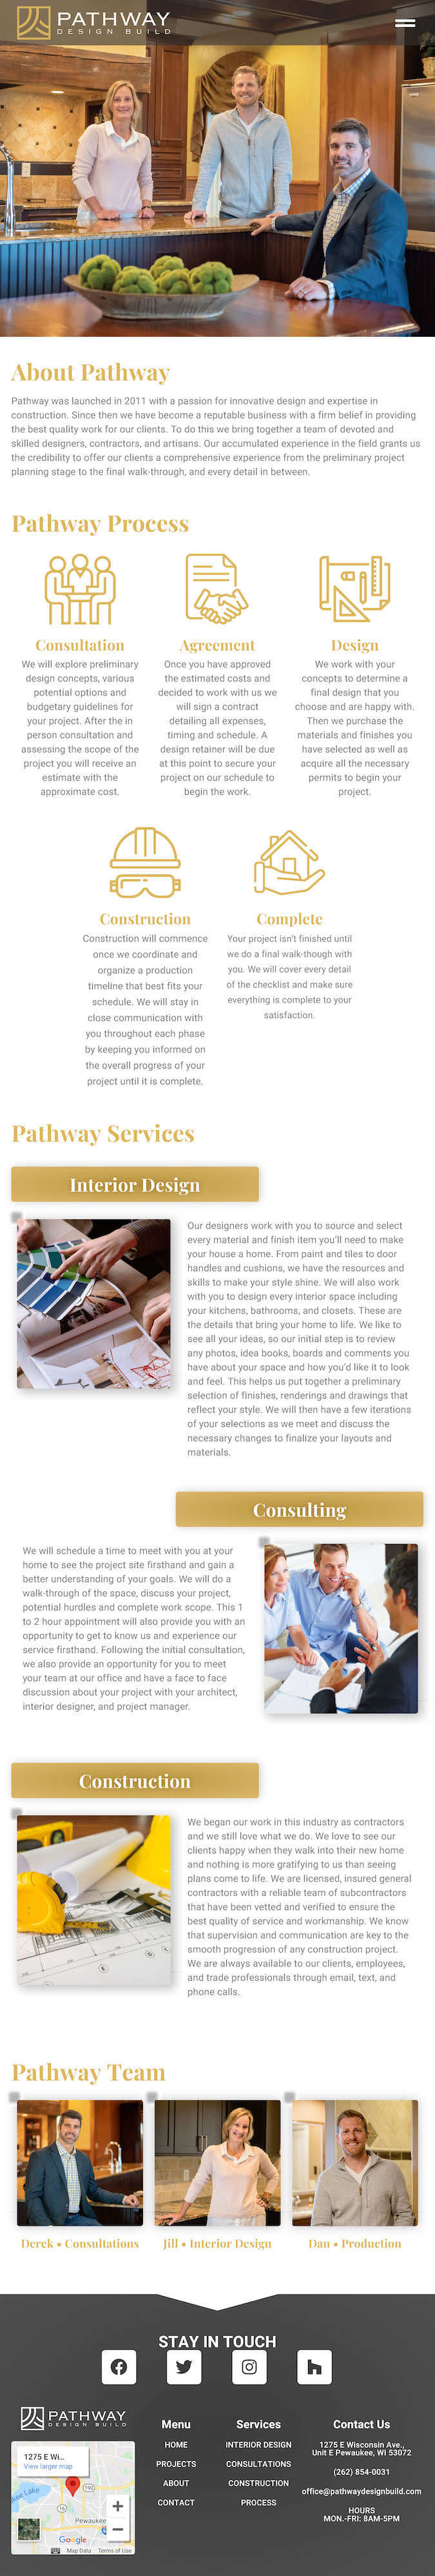 Pathway Design Build About- Tablet